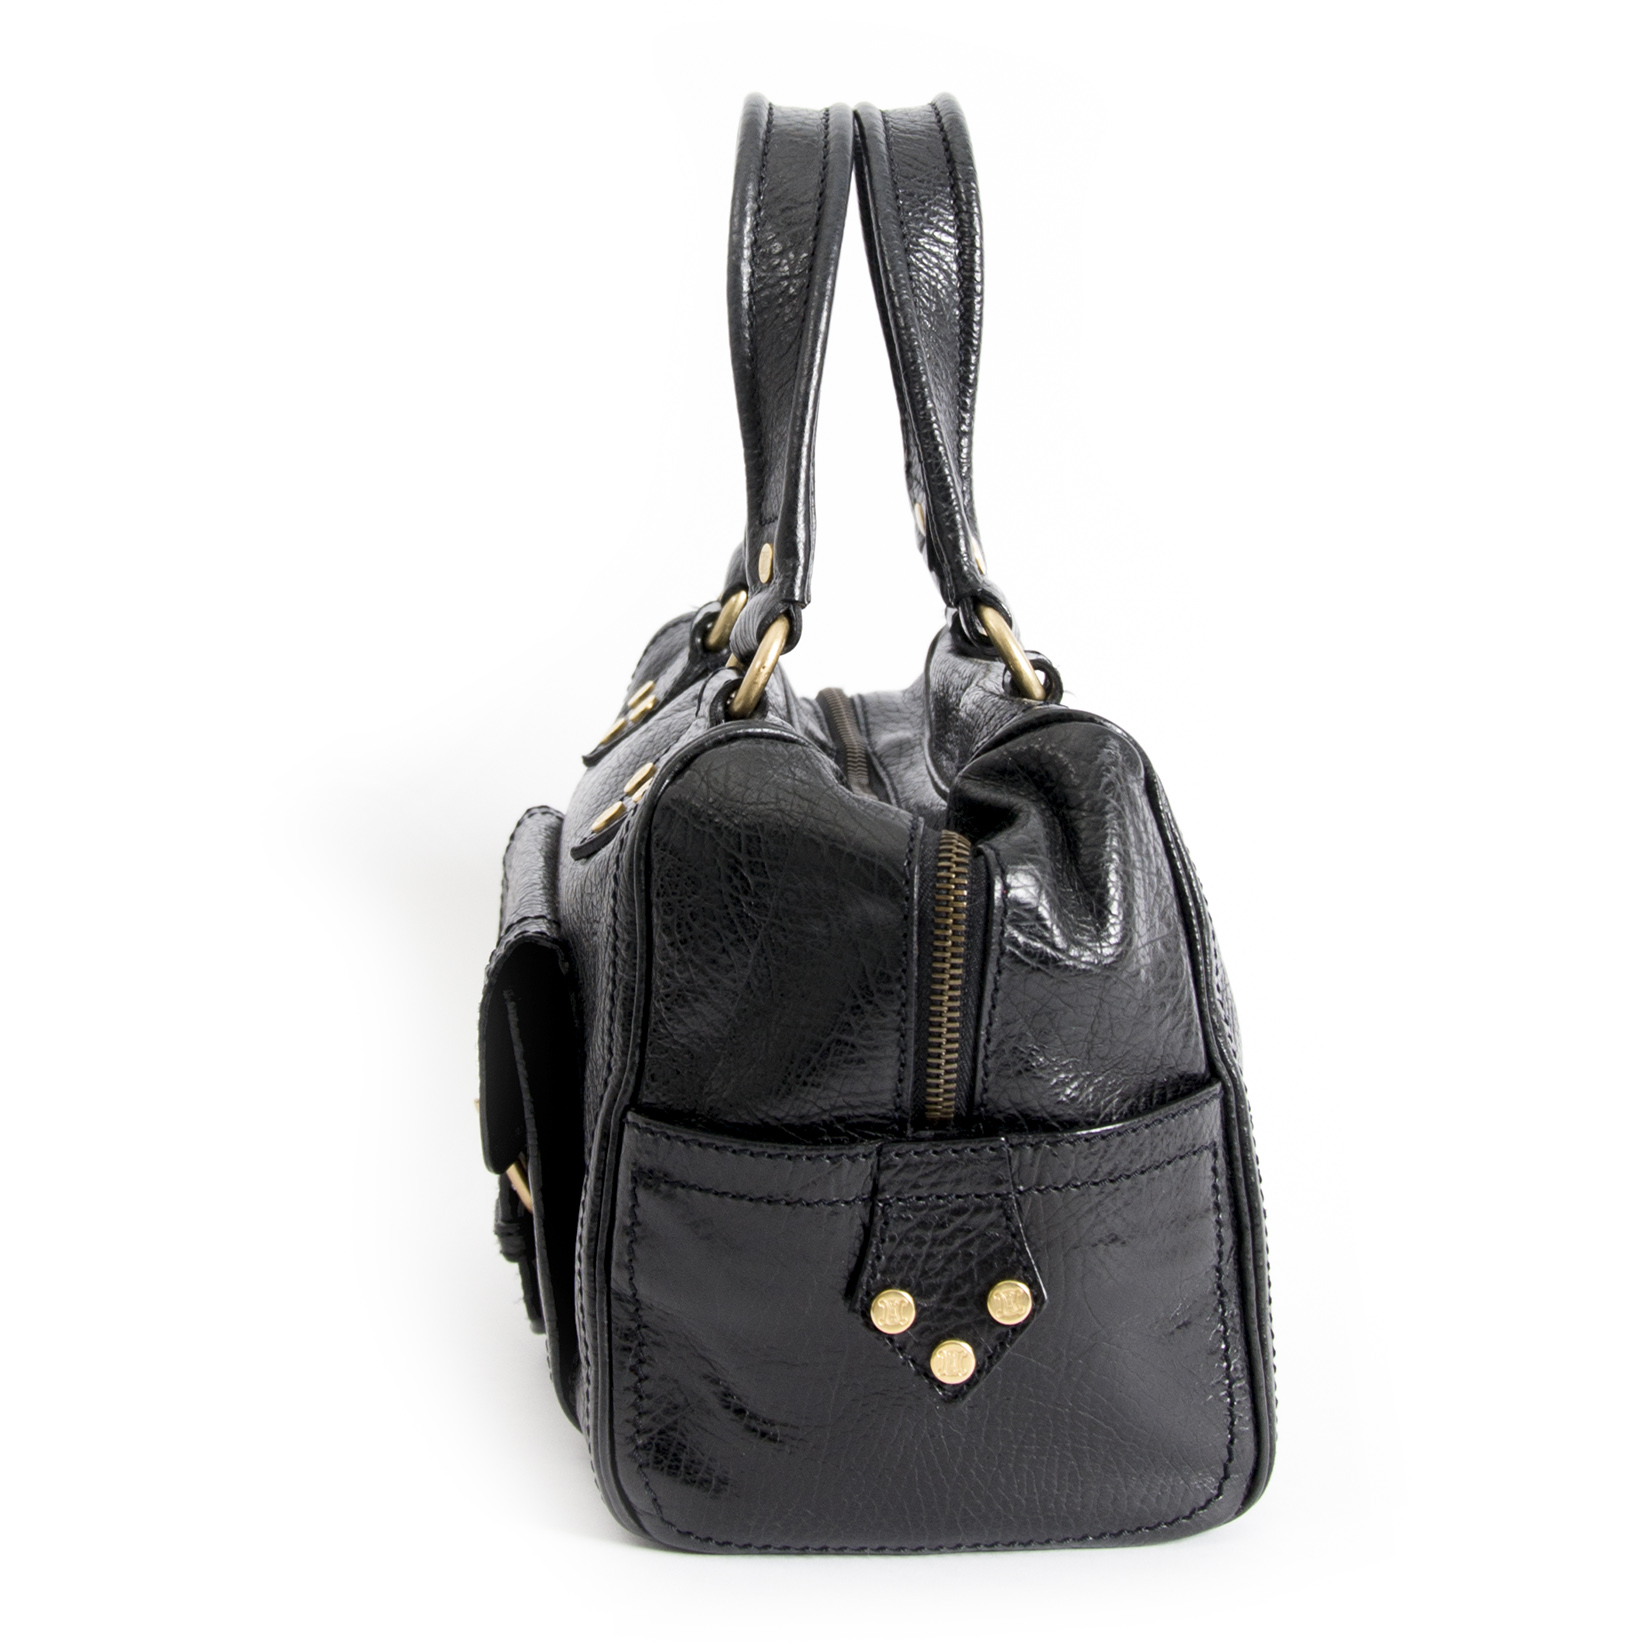 shop safe online your Céline Black Leather Handbag